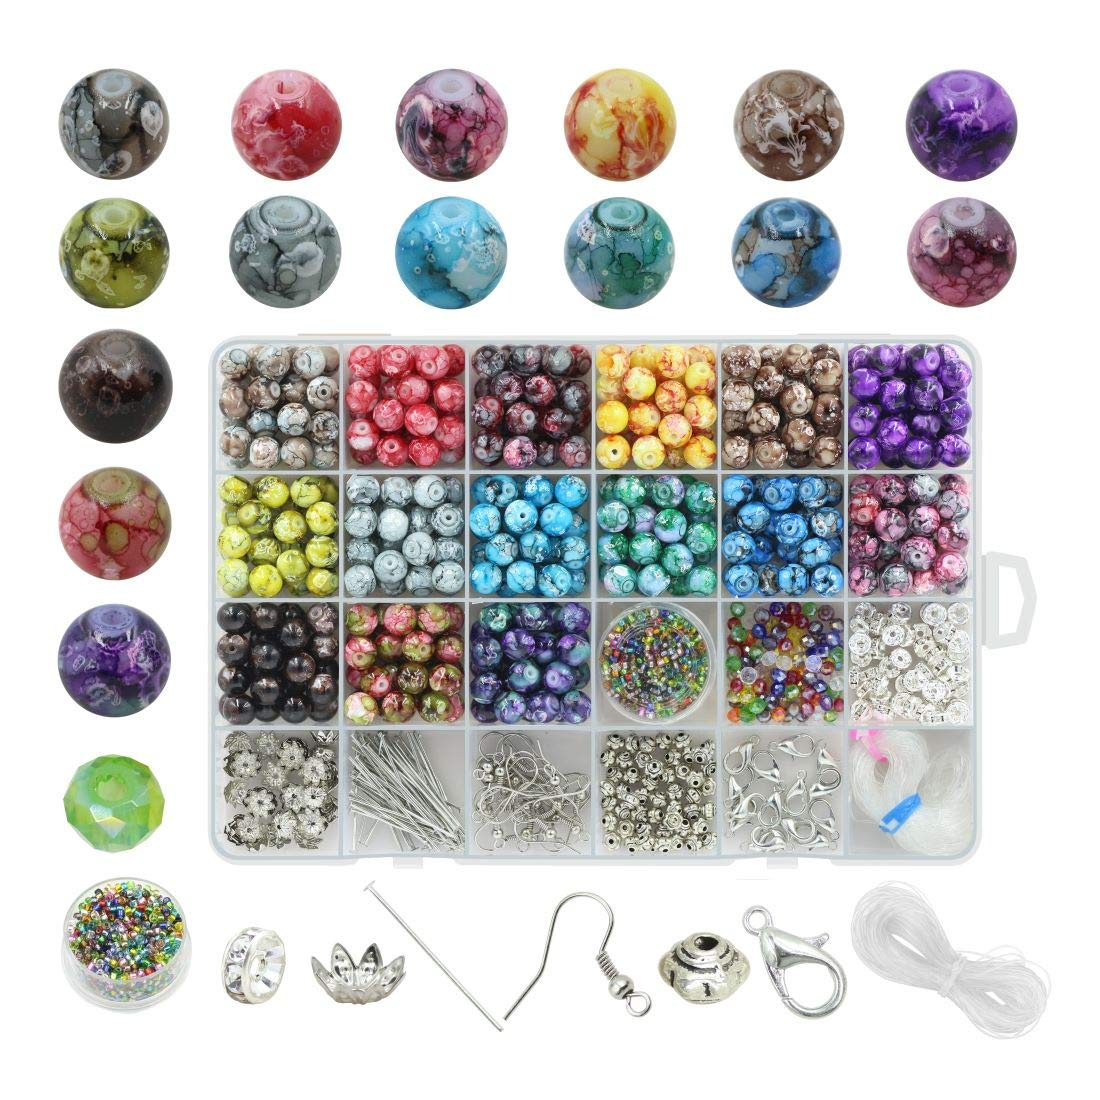 Beads for Jewelry Making Adults 8mm Assorted Colors Handcrafted Crackle Round Glass Beads 375pcs with Jewelry Accessories and Elastic String for Jewelry Making with Container Box by ZHUBI